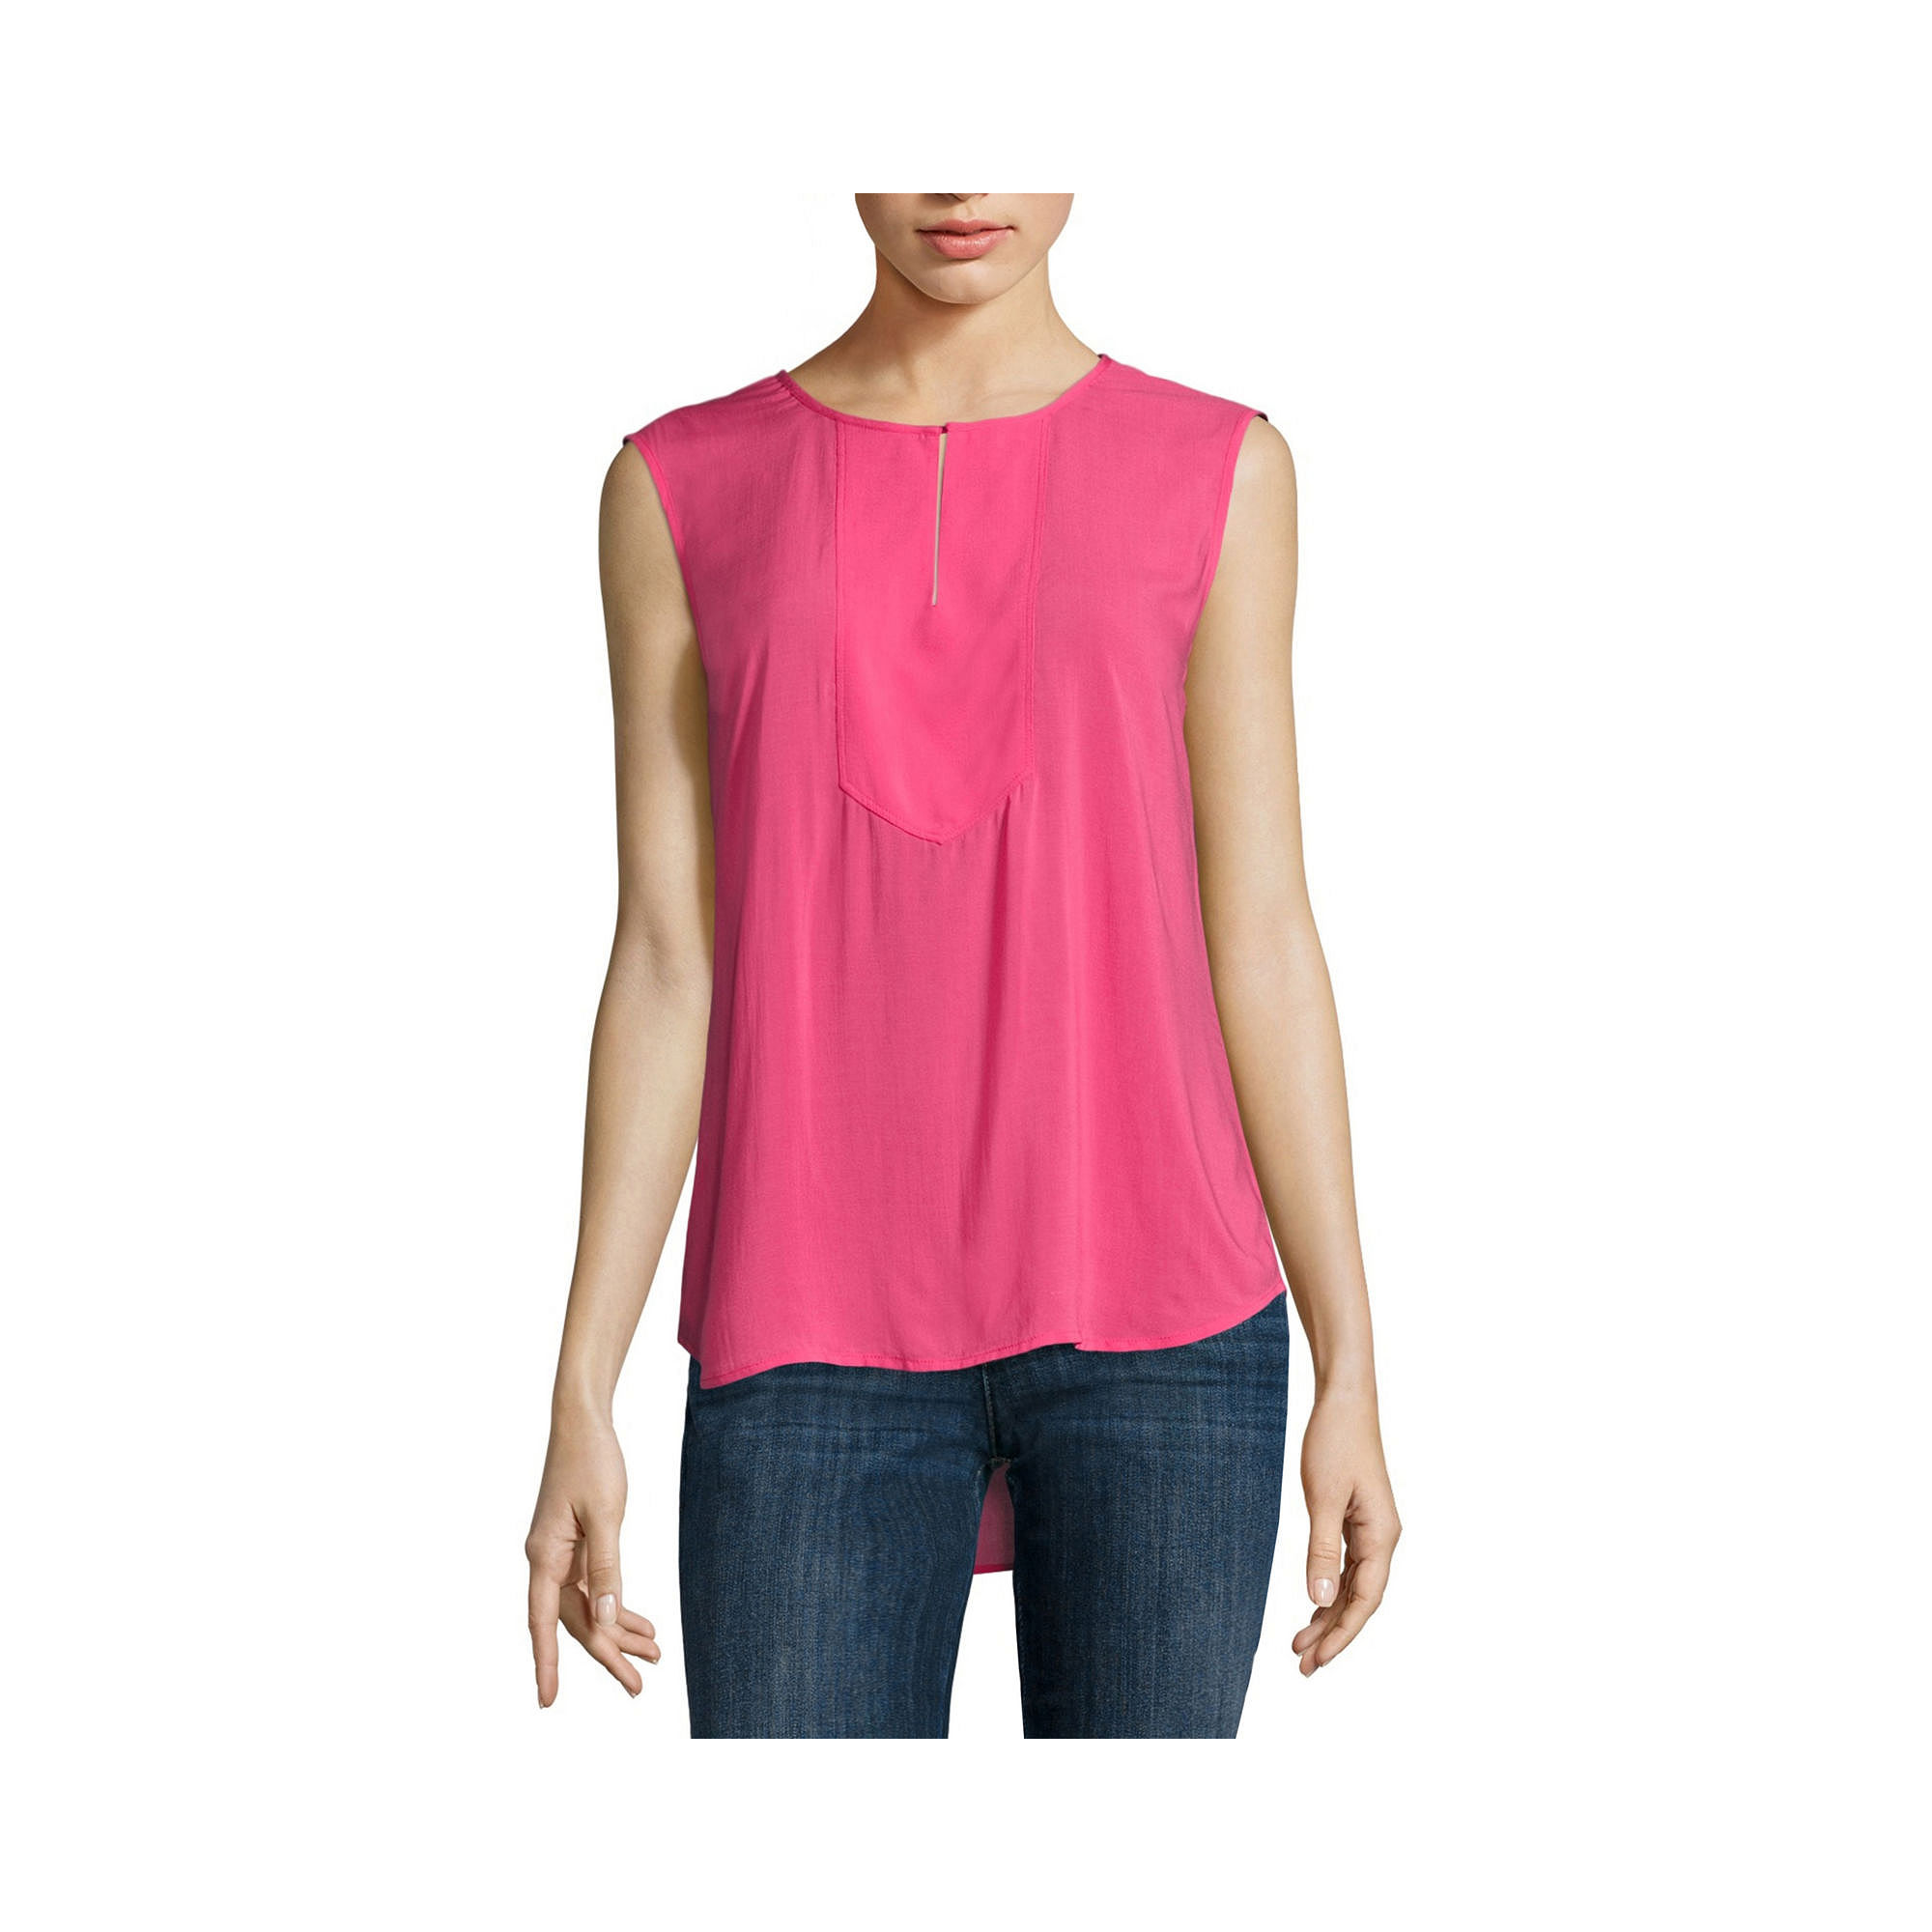 Liz Claiborne Sleeveless Bib Top | Clothing